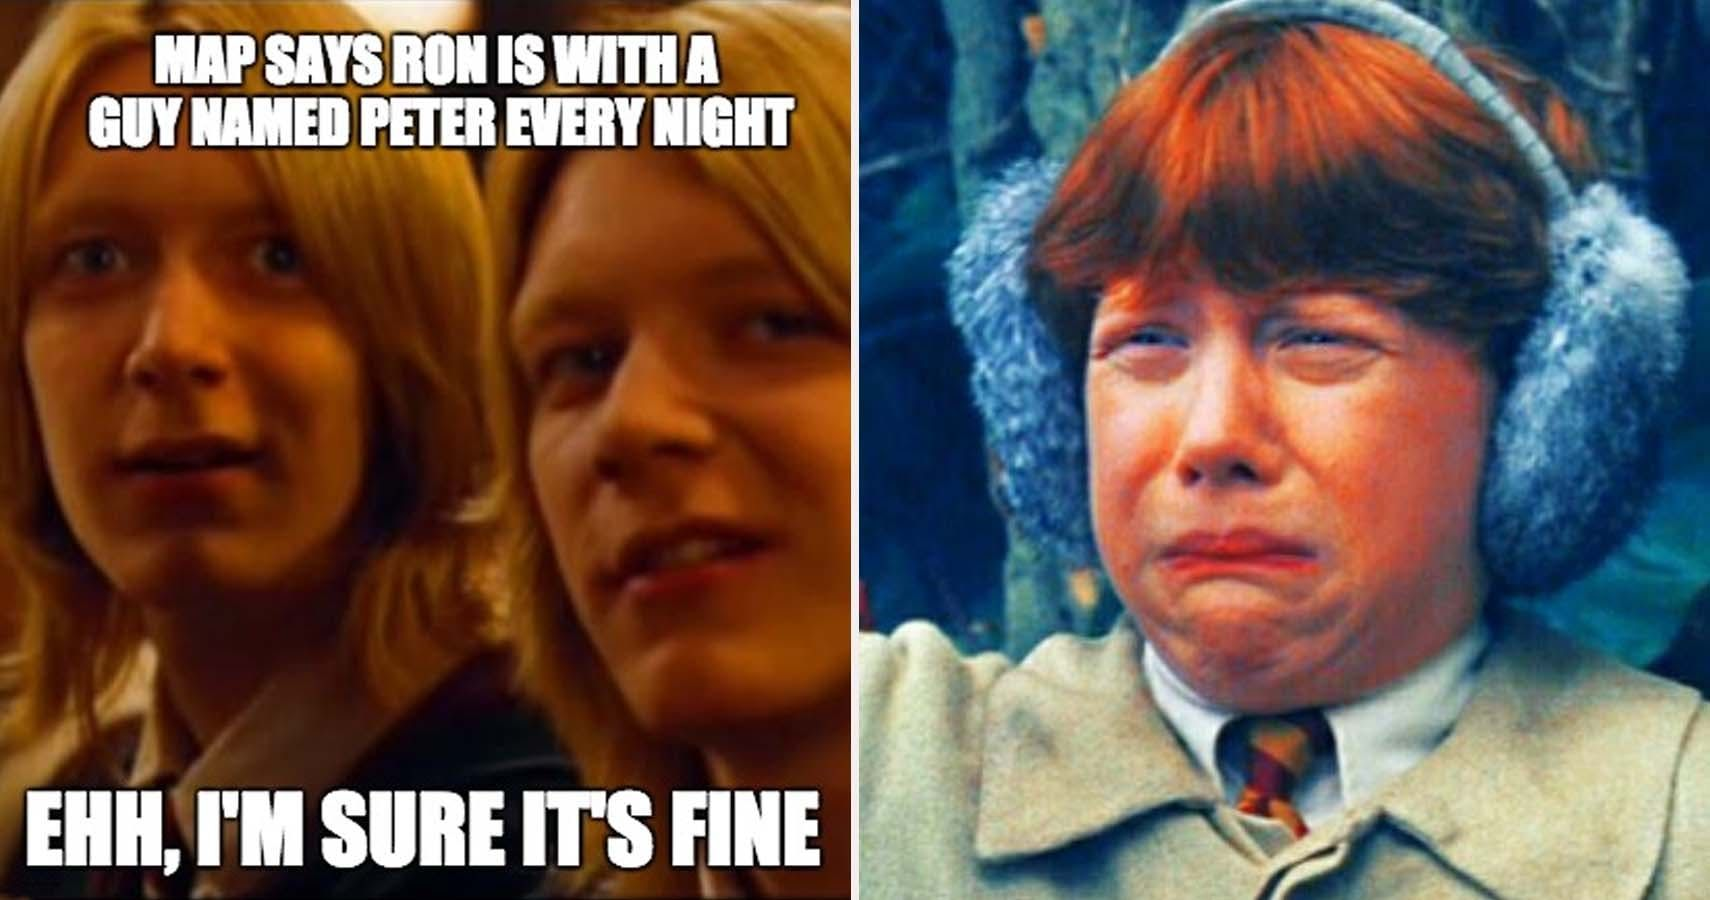 Pin By Your Local Witch On Harry Potter Harry Potter Feels Draco Harry Potter Harry Potter Memes